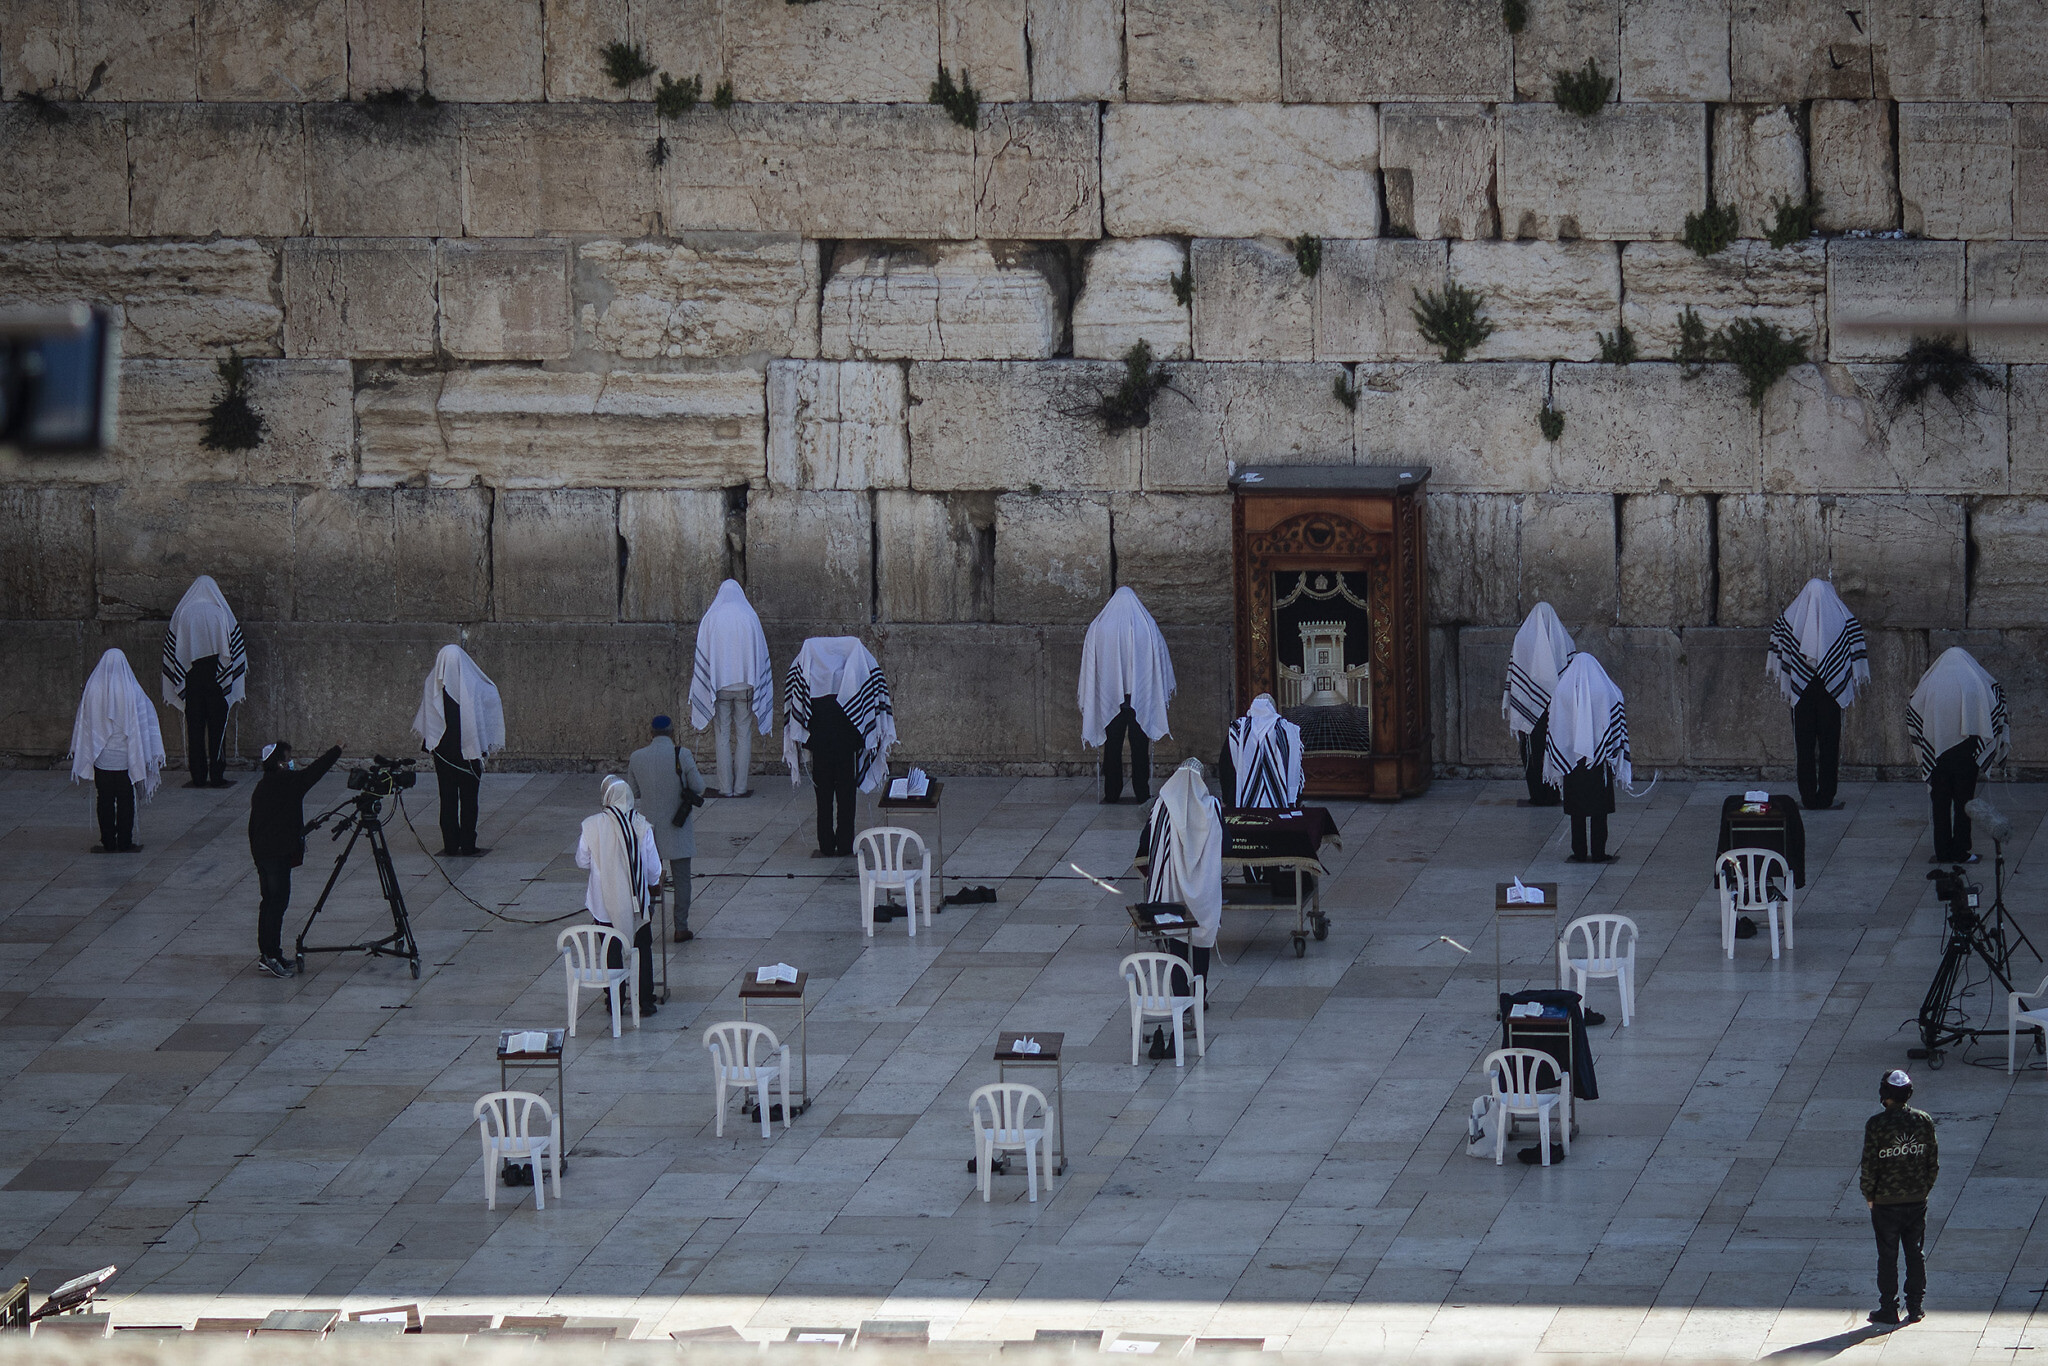 A small group of distanced Jewish priests take part in the traditional Cohanim prayer (priestly blessing), during the Passover holiday at the Western Wall in the Old City of Jerusalem, April 12, 2020. (Photo by Ilia Yefimovich/picture alliance via Getty Images/ via JTA/SUE)